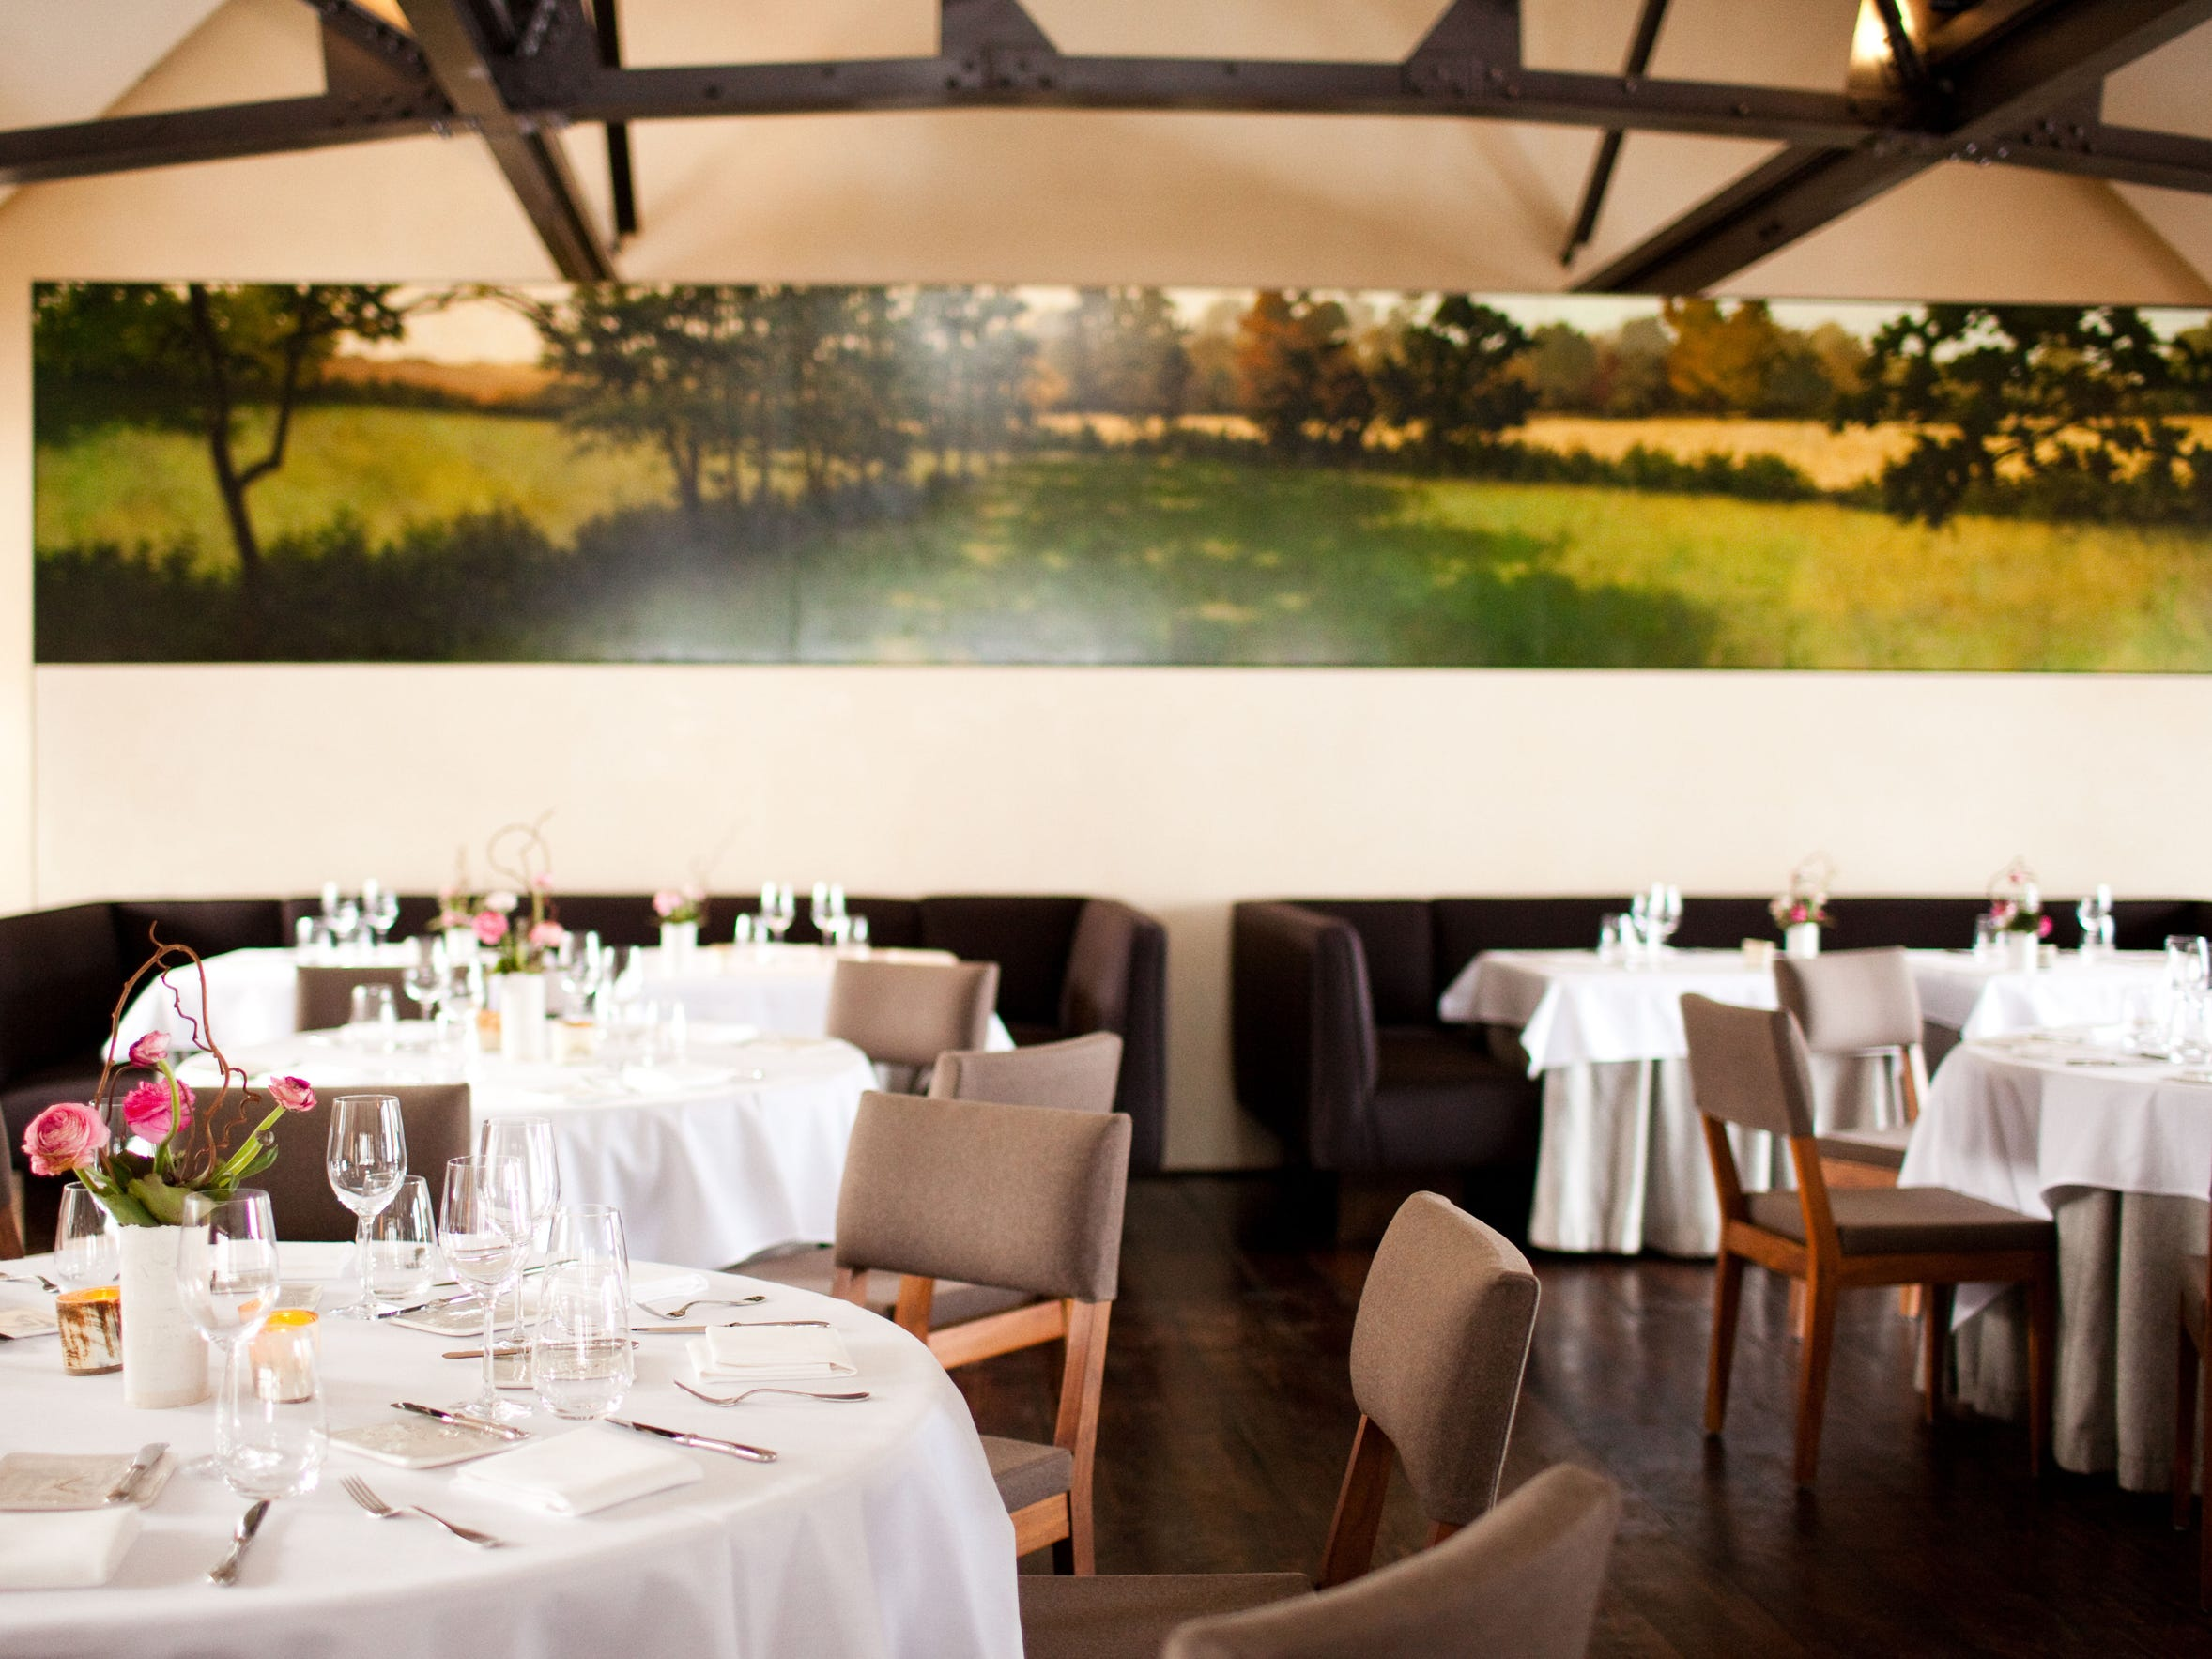 Blue Hill at Stone Barns Rising culinary stars flock to